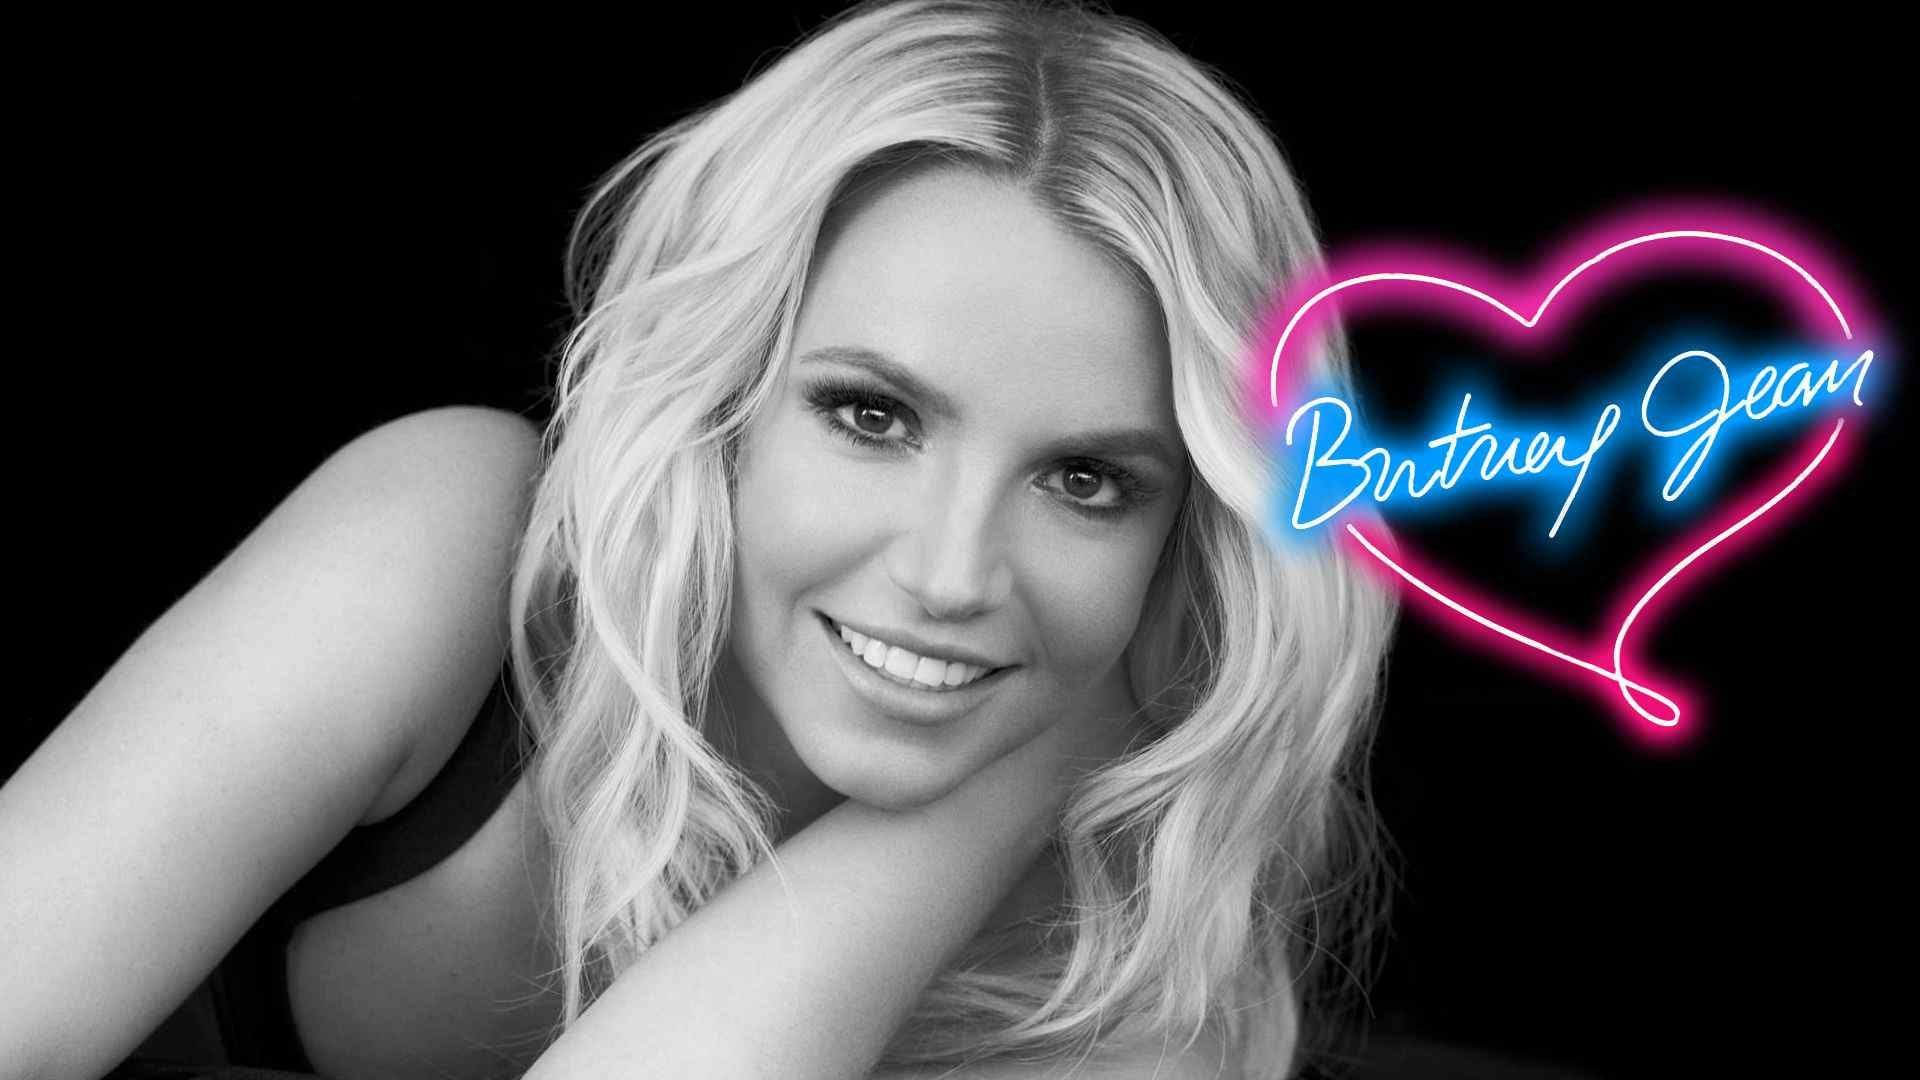 1920x1080 Britney Spears HD Wallpapers : Get Free top quality Britney Spears HD  Wallpapers for your desktop PC background, ios or android mobile phones at  ...